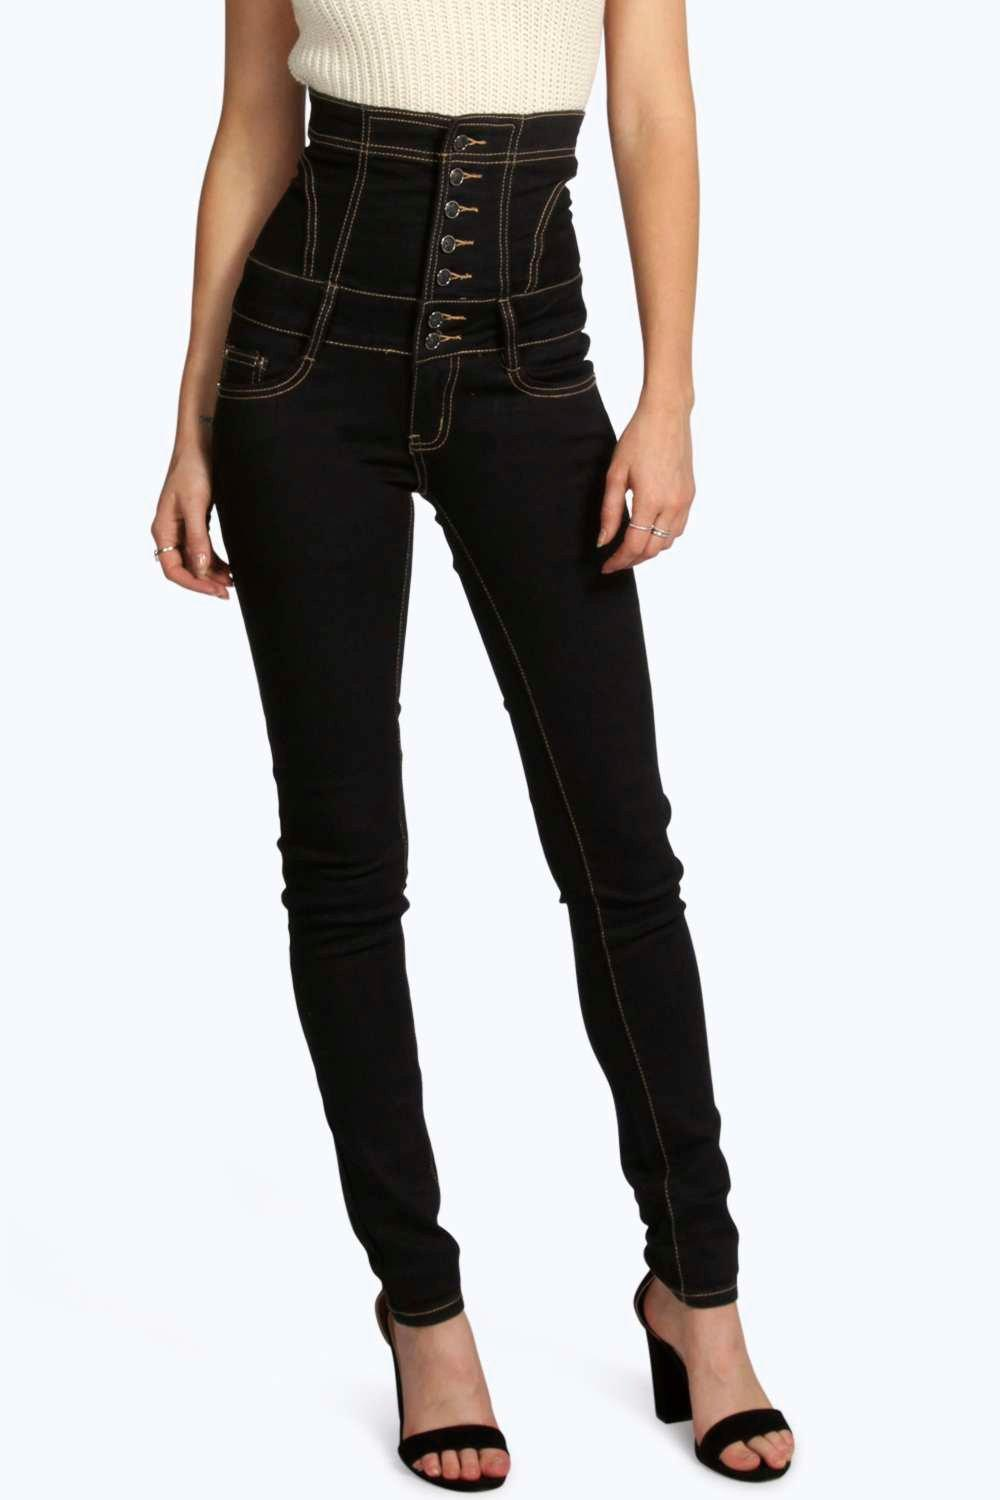 extra high waisted jeans - Jean Yu Beauty